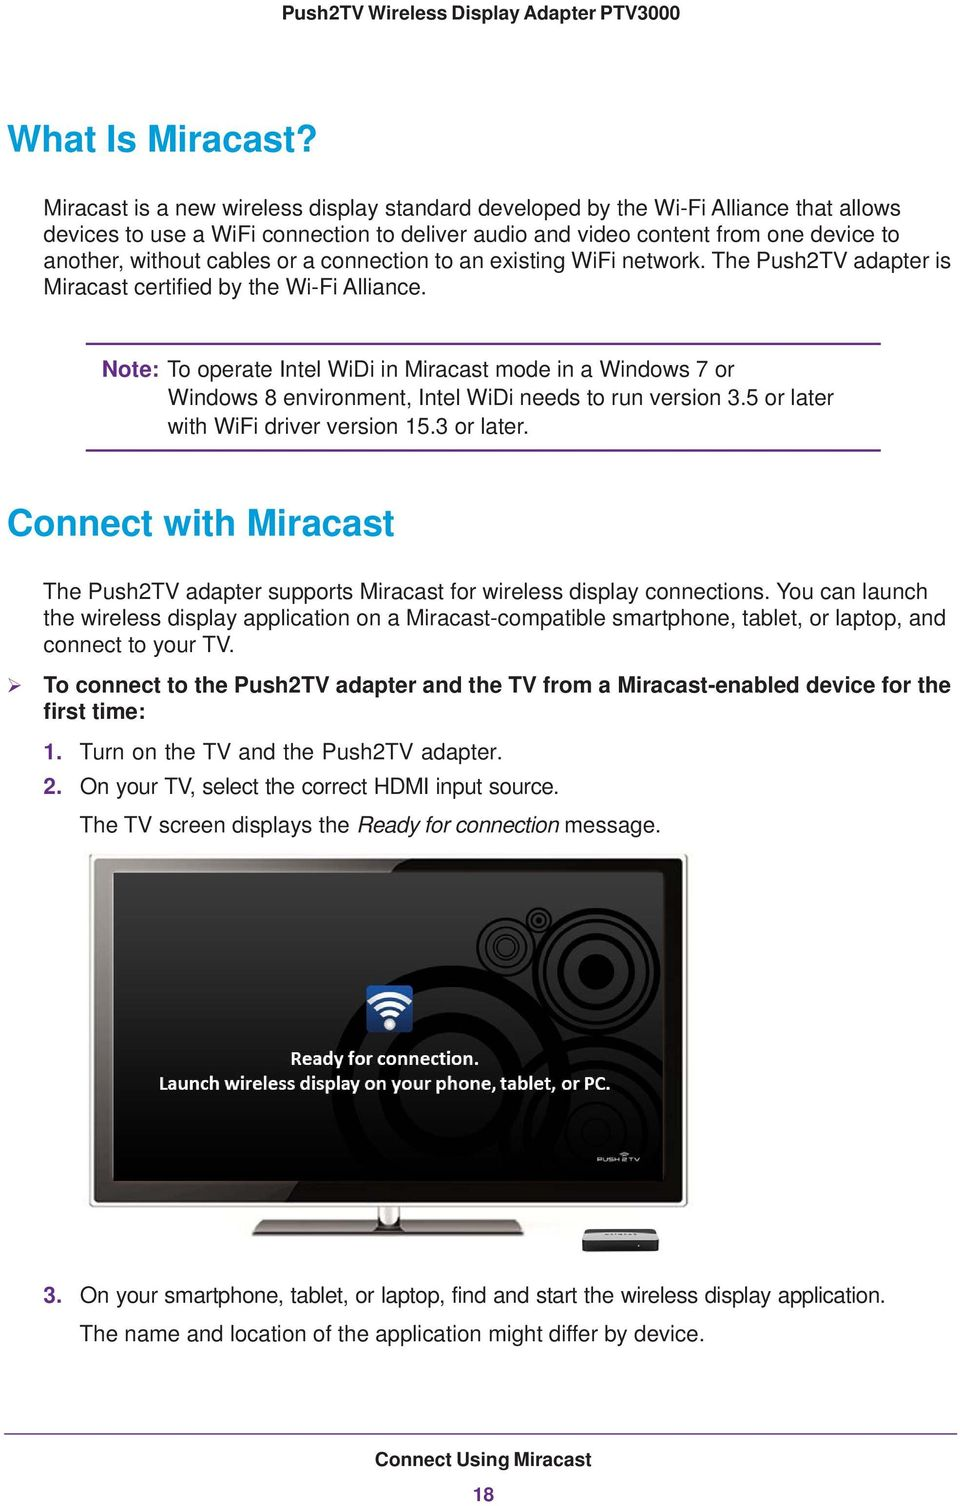 or a connection to an existing WiFi network. The Push2TV adapter is Miracast certified by the Wi-Fi Alliance.